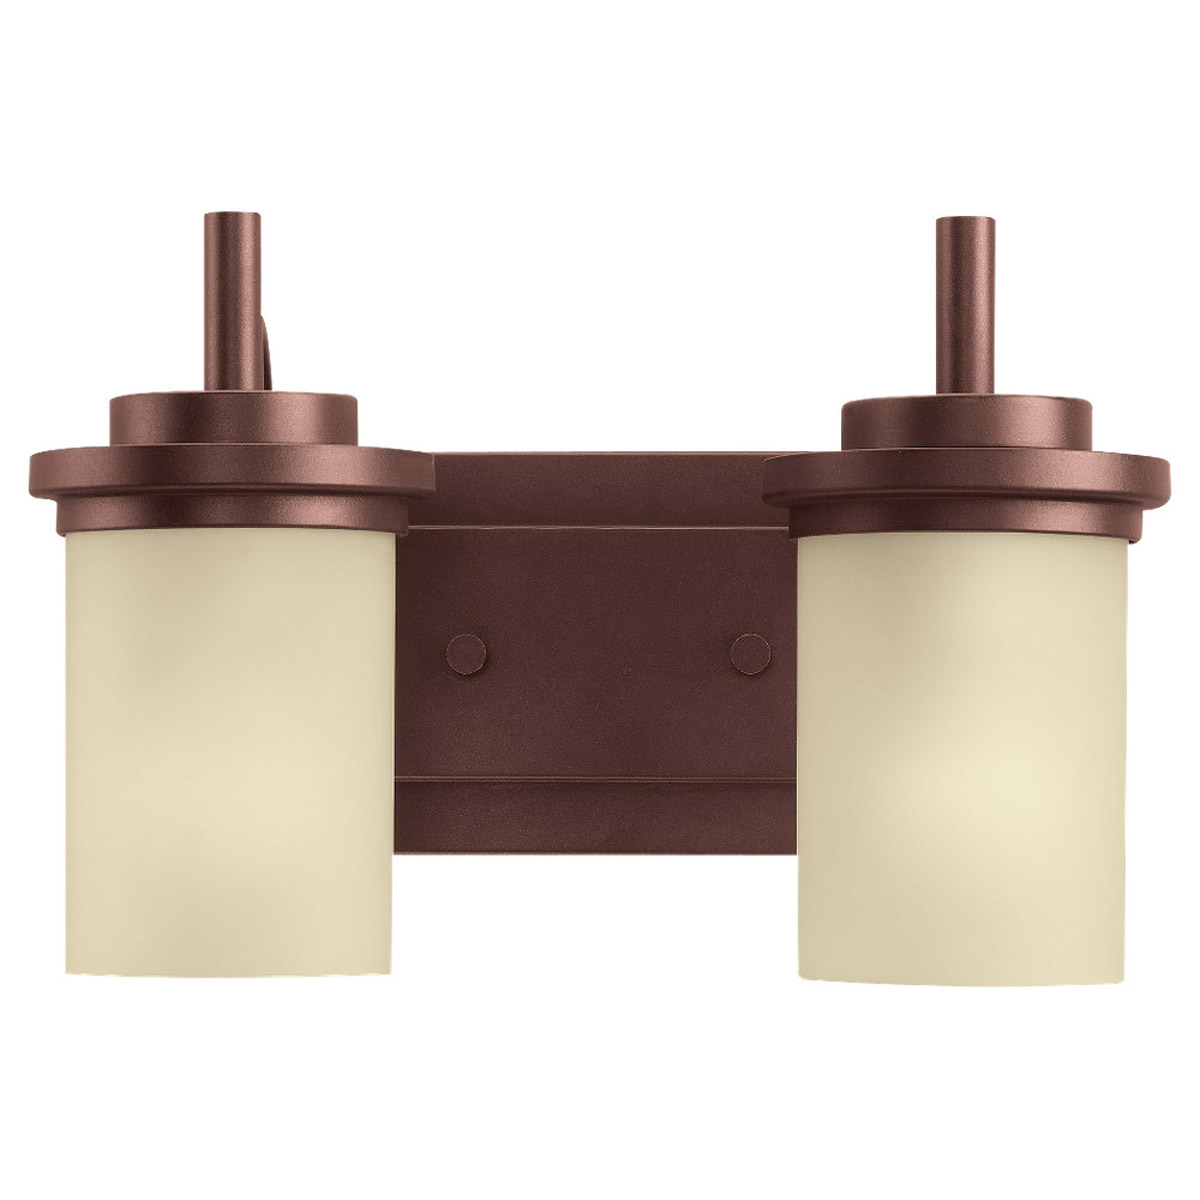 Sea Gull Lighting Winnetka 2 Light Wall / Bath / Vanity in Red Earth 44661-847 photo